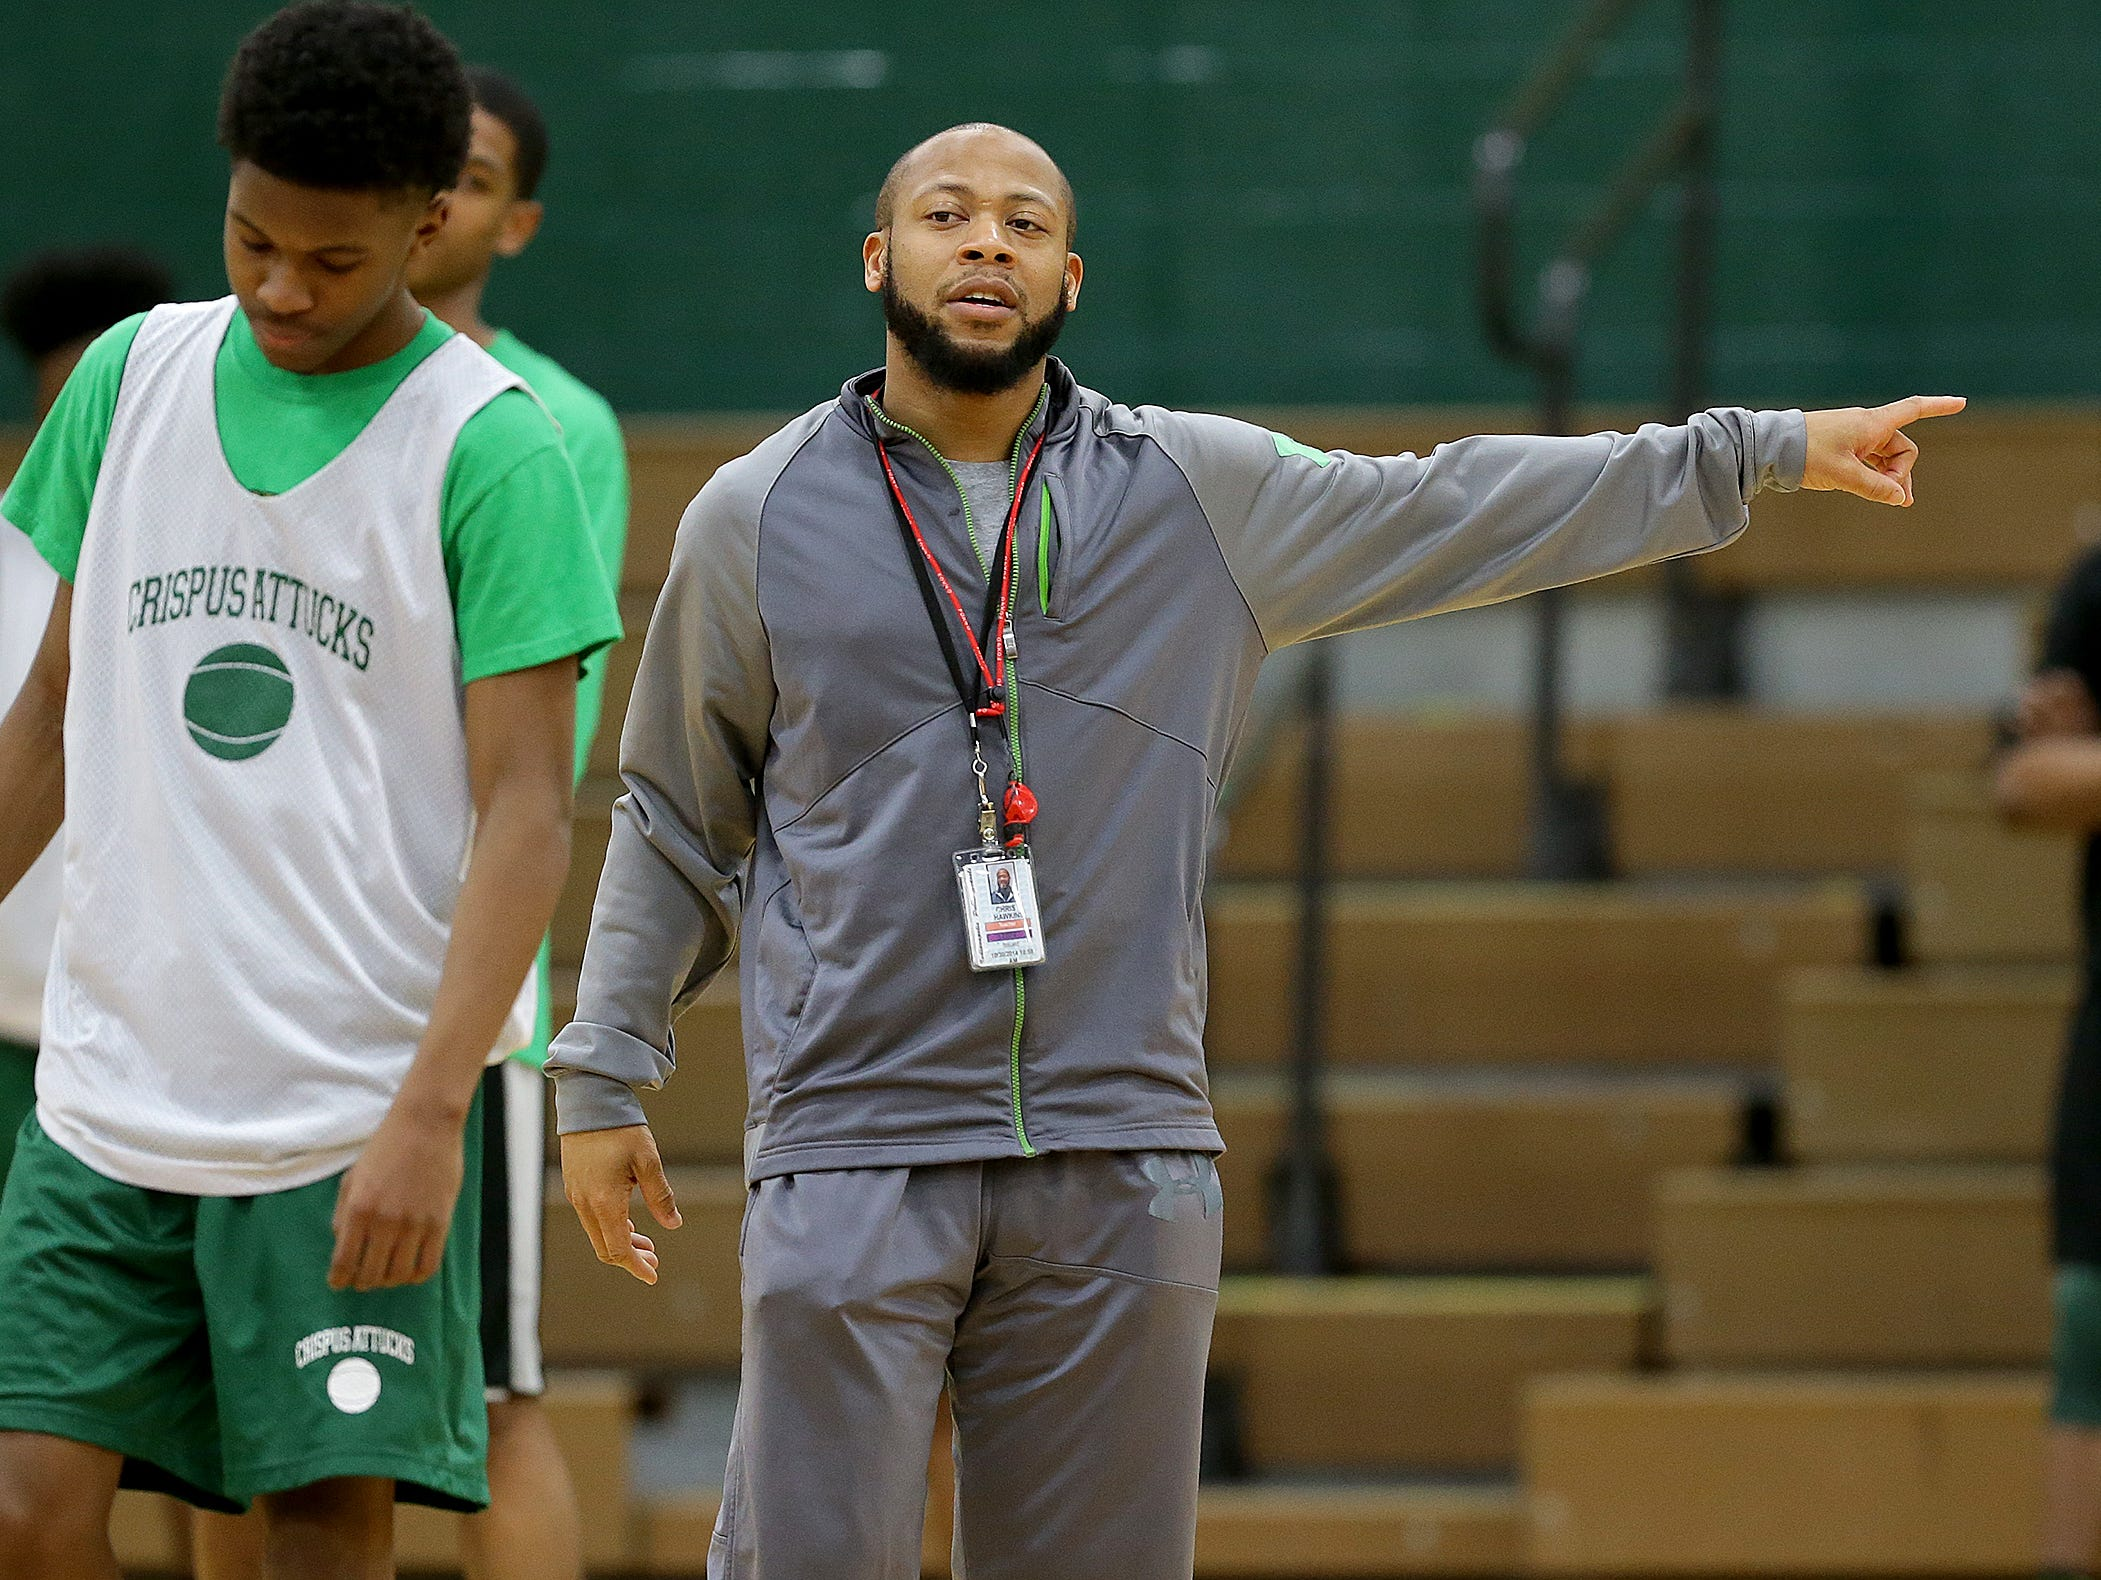 Crispus Attucks Tigers head coach Chris Hawkins during Crispus Attucks Tigers practice Tuesday, March 21, 2017, afternoon at Crispus Attucks High School. The Tigers are preparing for the 3A Indiana State finals game against the Twin Lakes Indians.